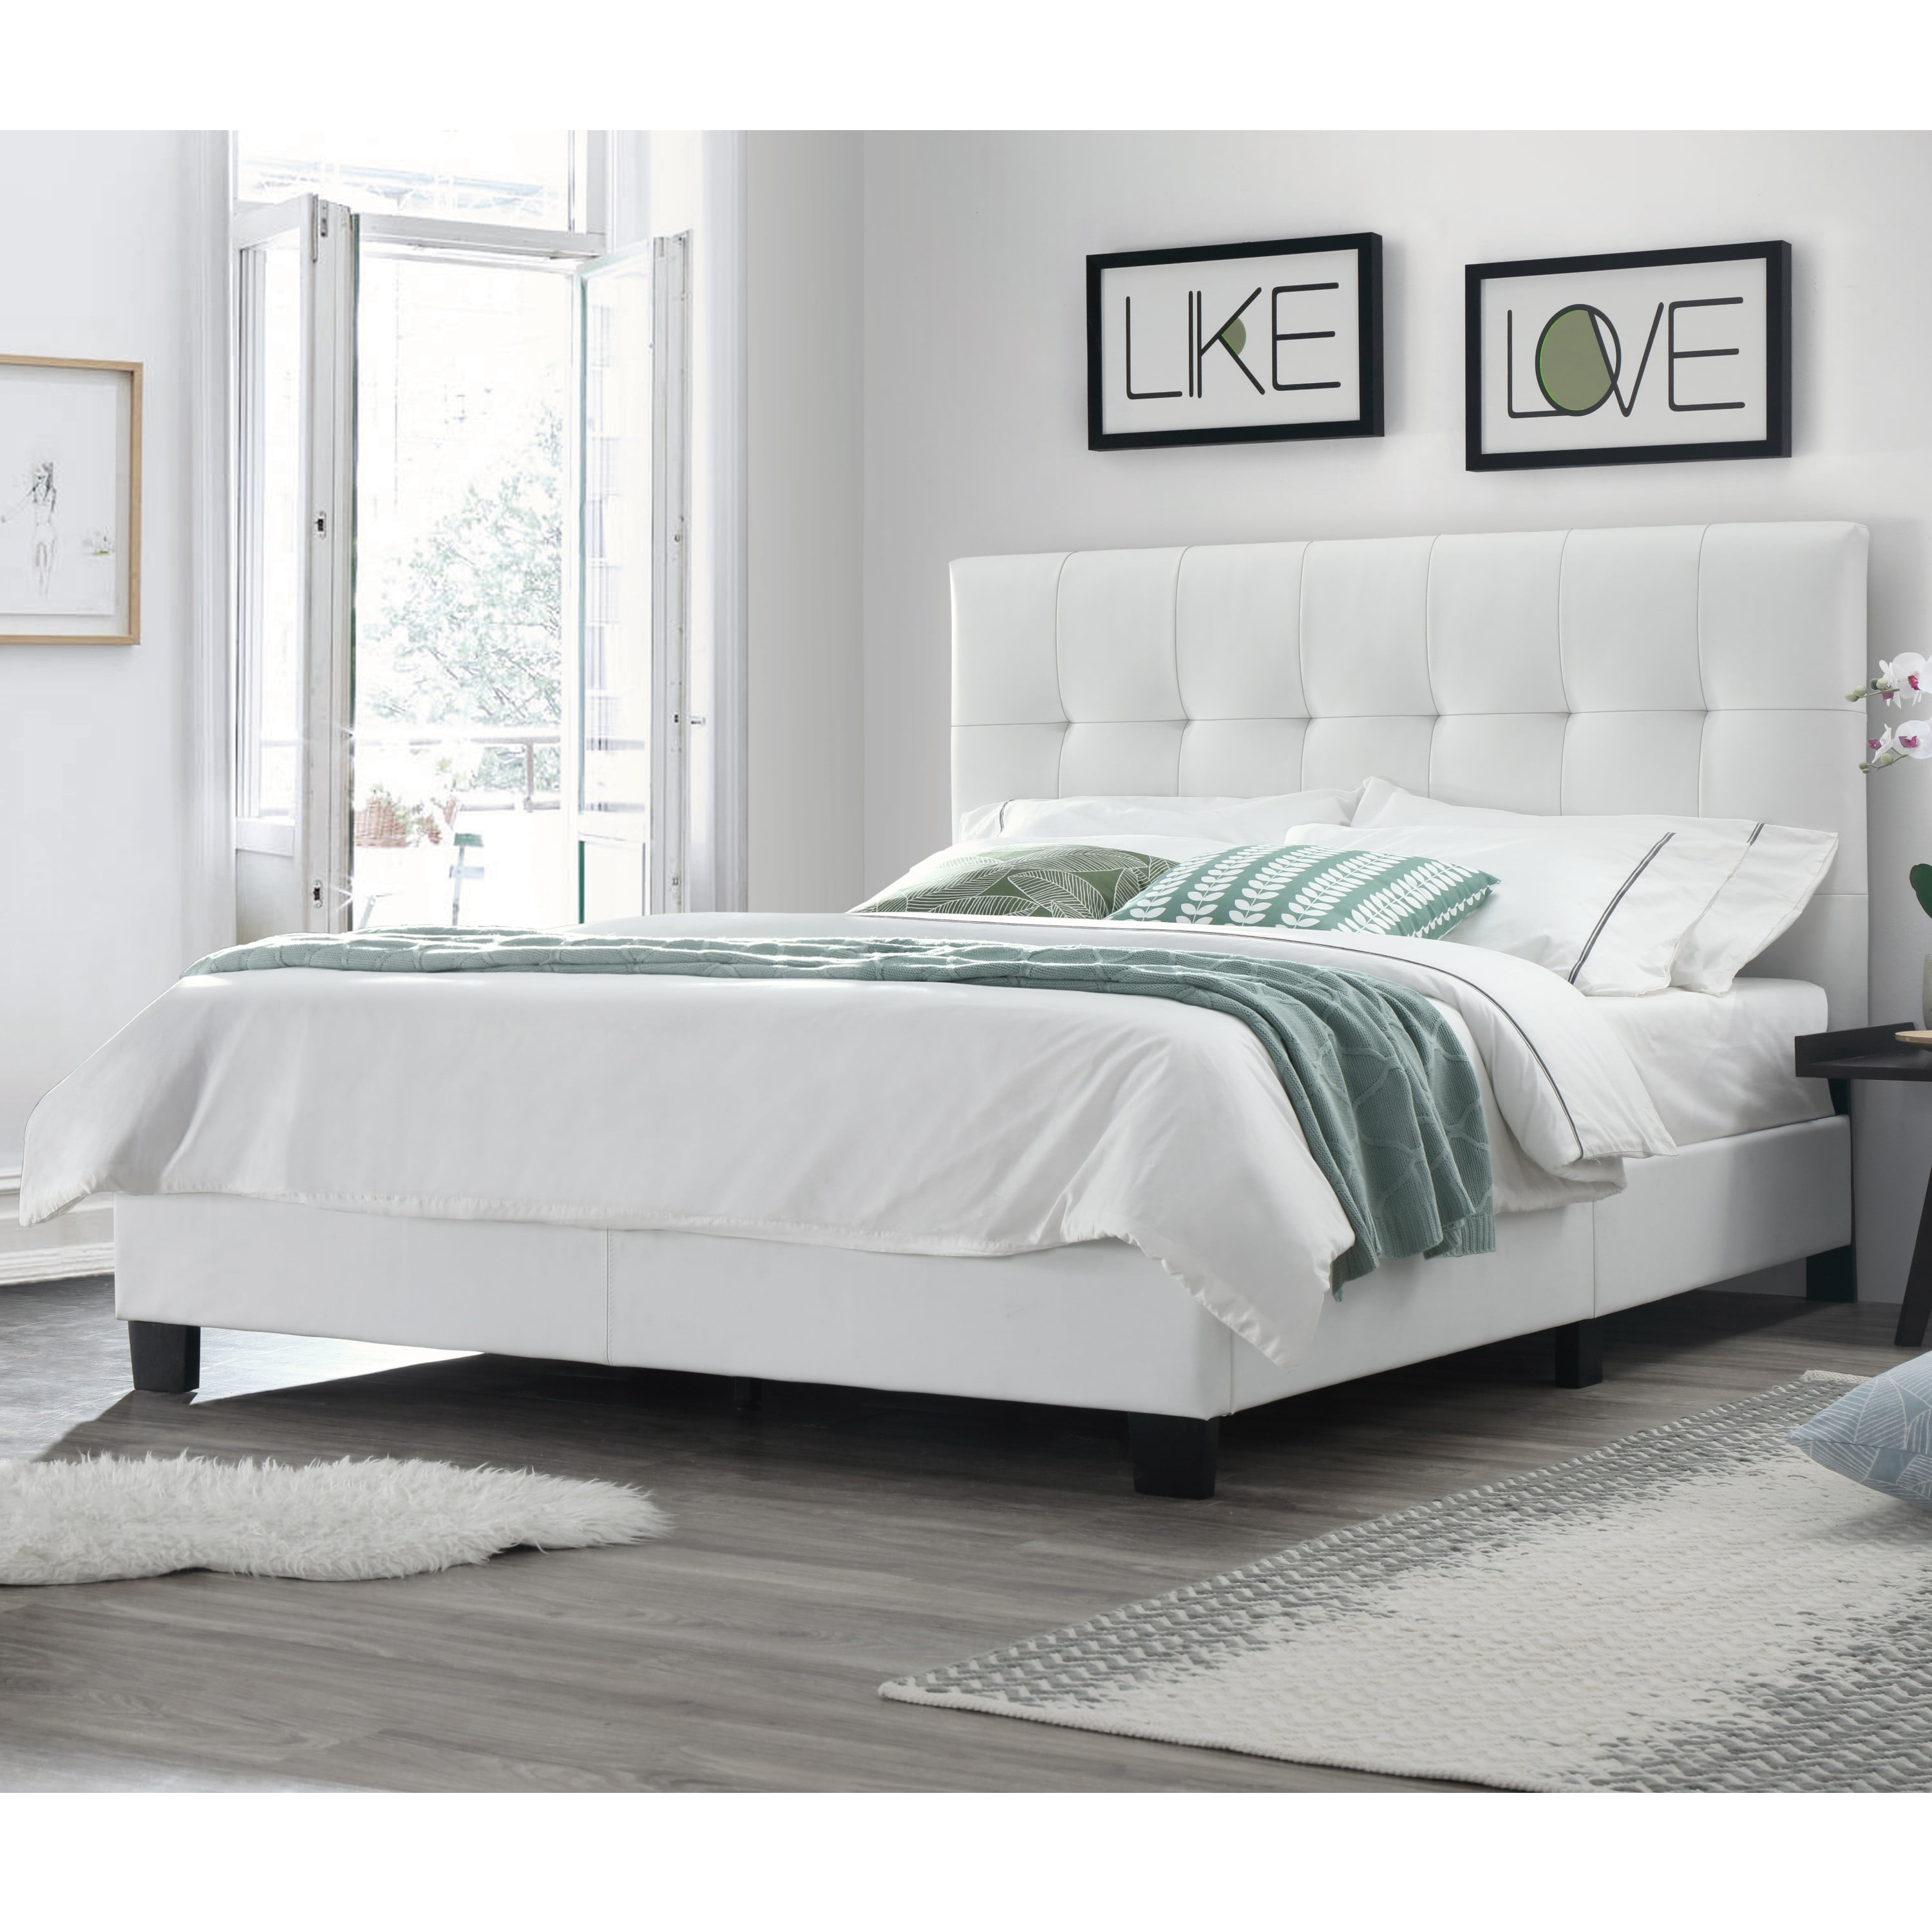 Picture of: Dg Casa Bianca Tufted Upholstered Platform Bed Frame Queen Size In White Faux Leather Walmart Com Walmart Com